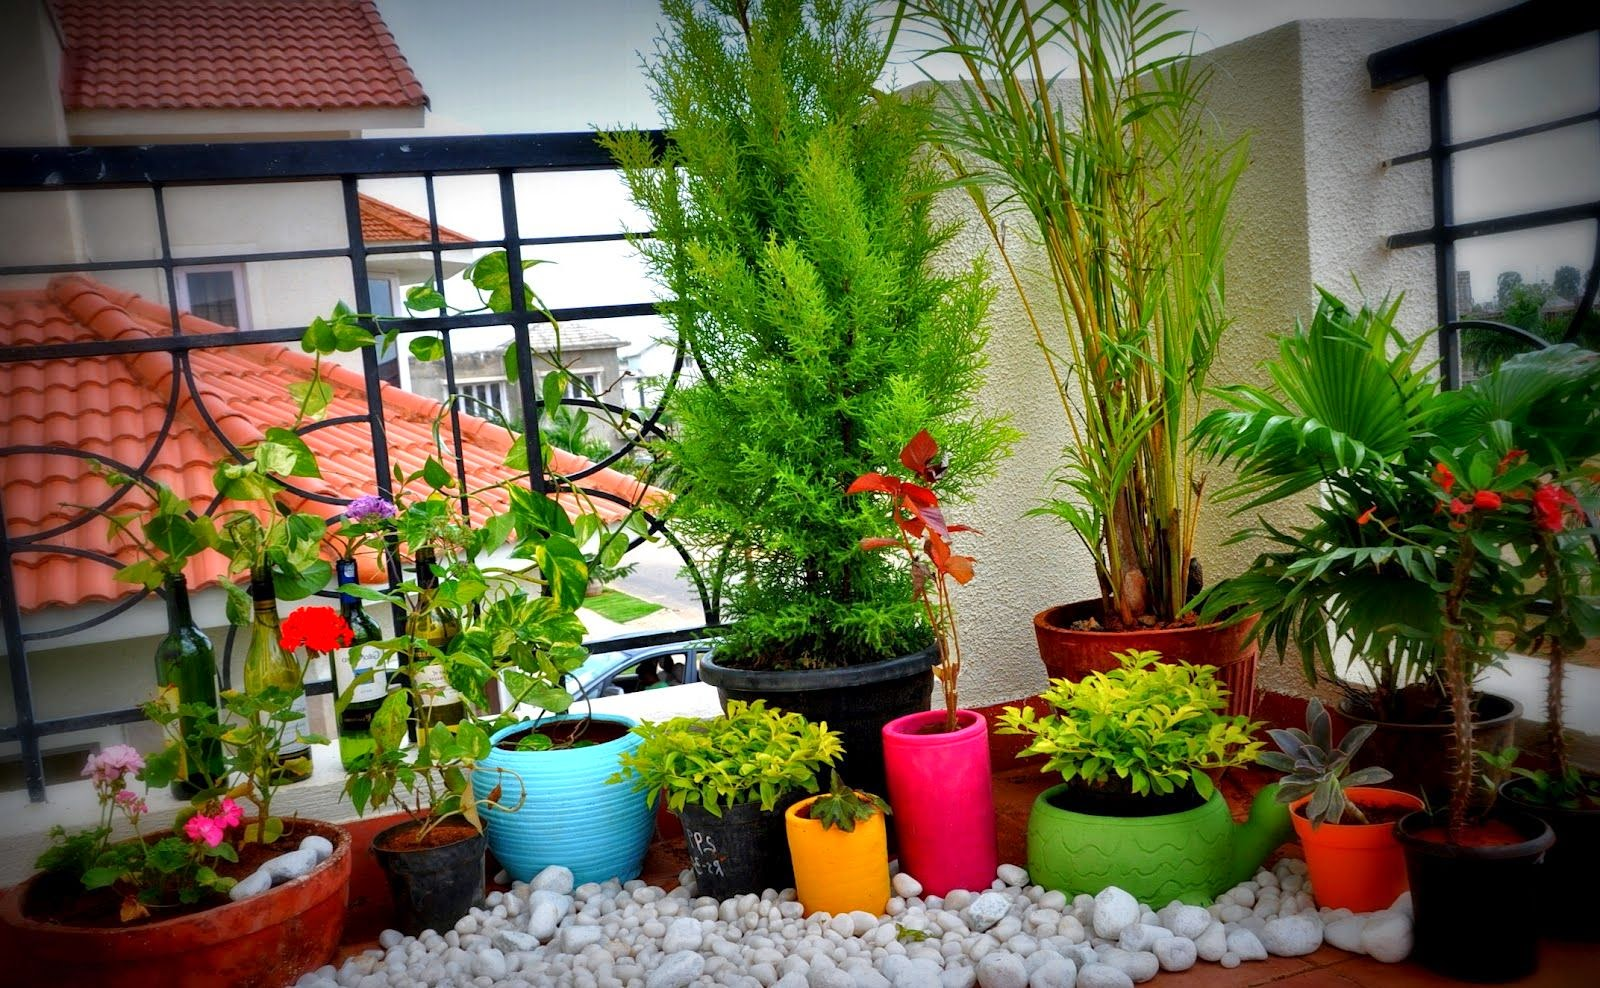 Home garden design for small spaces for Small balcony garden ideas